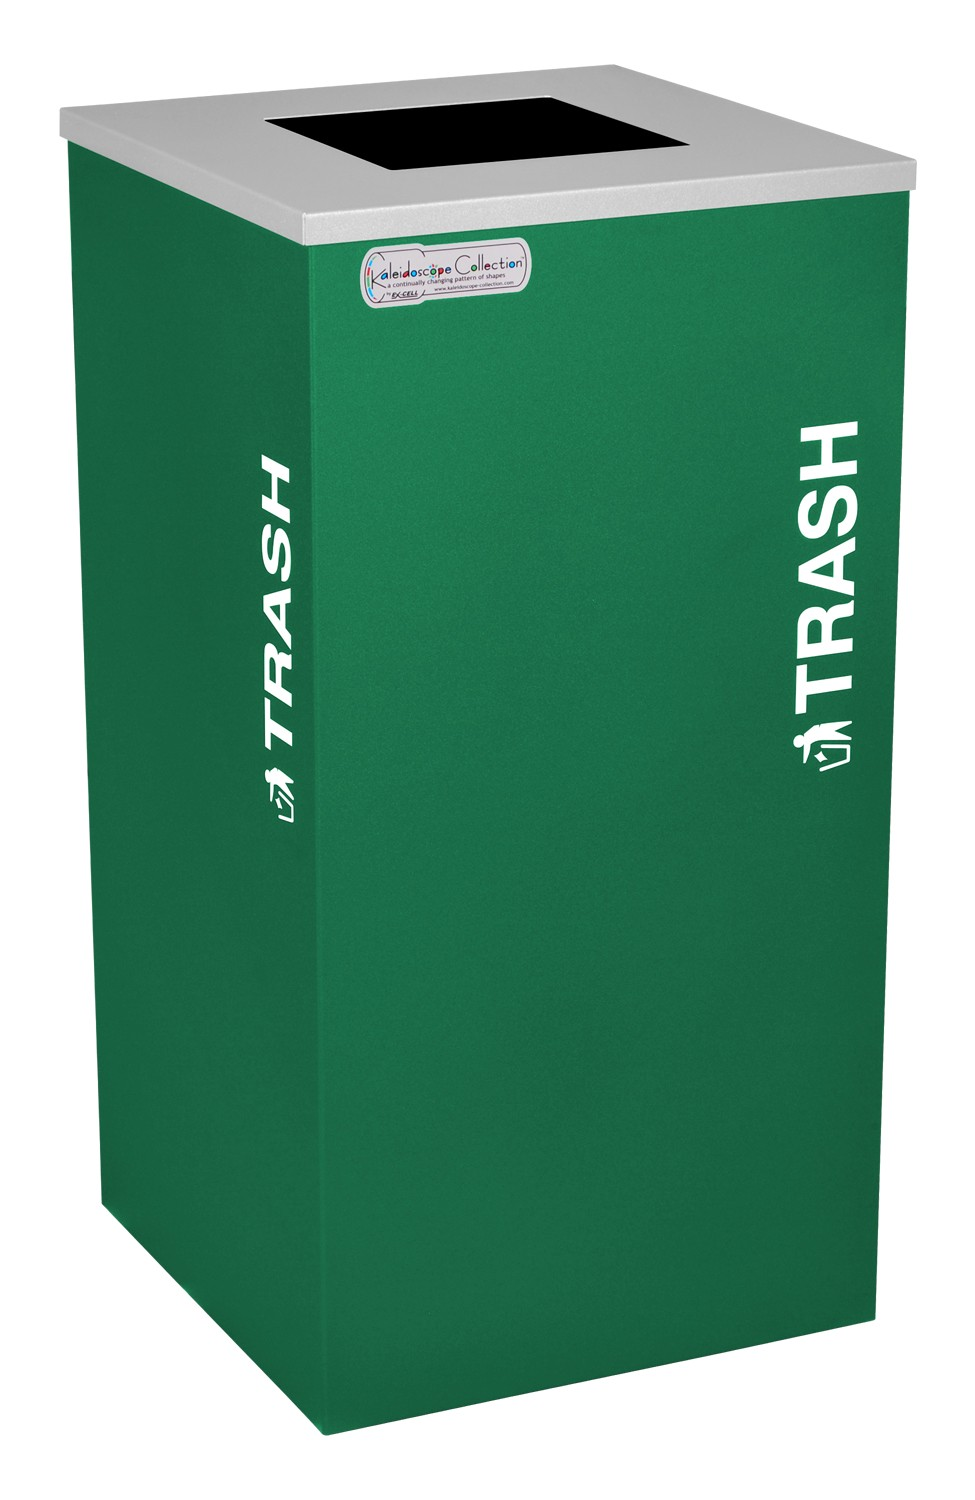 Ex-Cell Kaiser RC-KDSQ-T EGX 18-gal recycling recptacle- square top and Trash decal- Emerald Texture finish